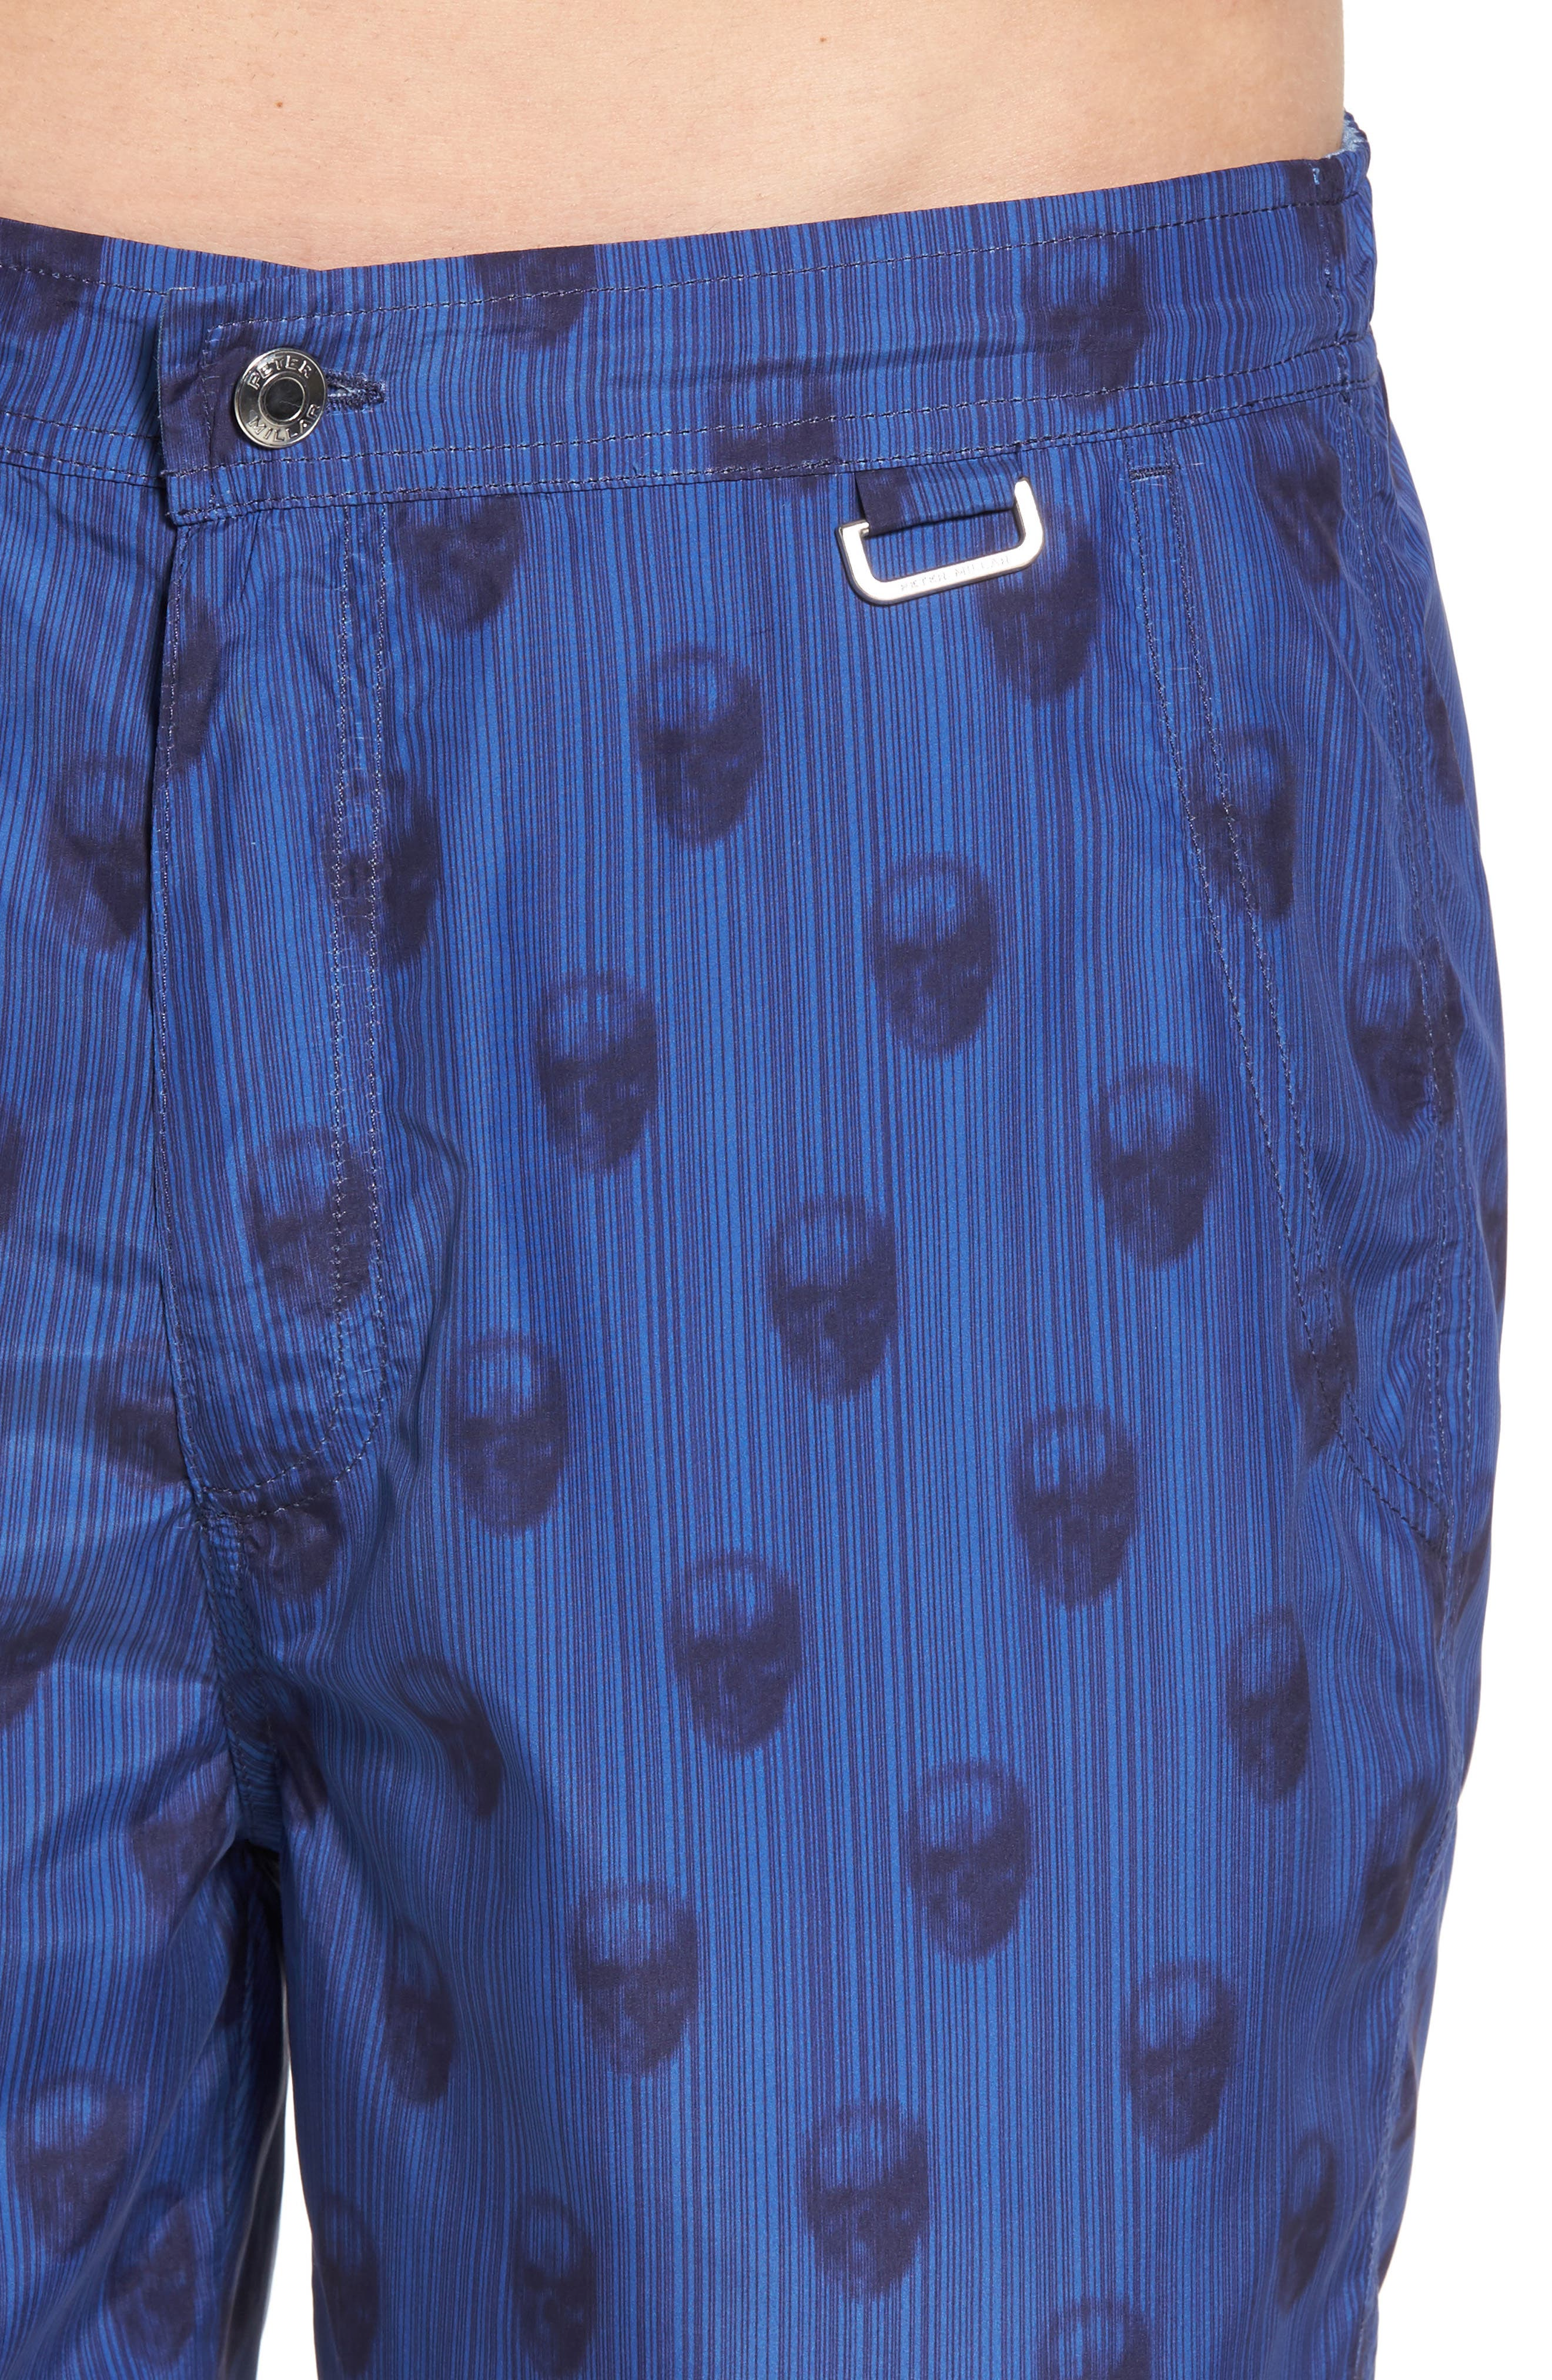 Peter Millar Black Jack's Bay Swim Trunks,                             Alternate thumbnail 4, color,                             440